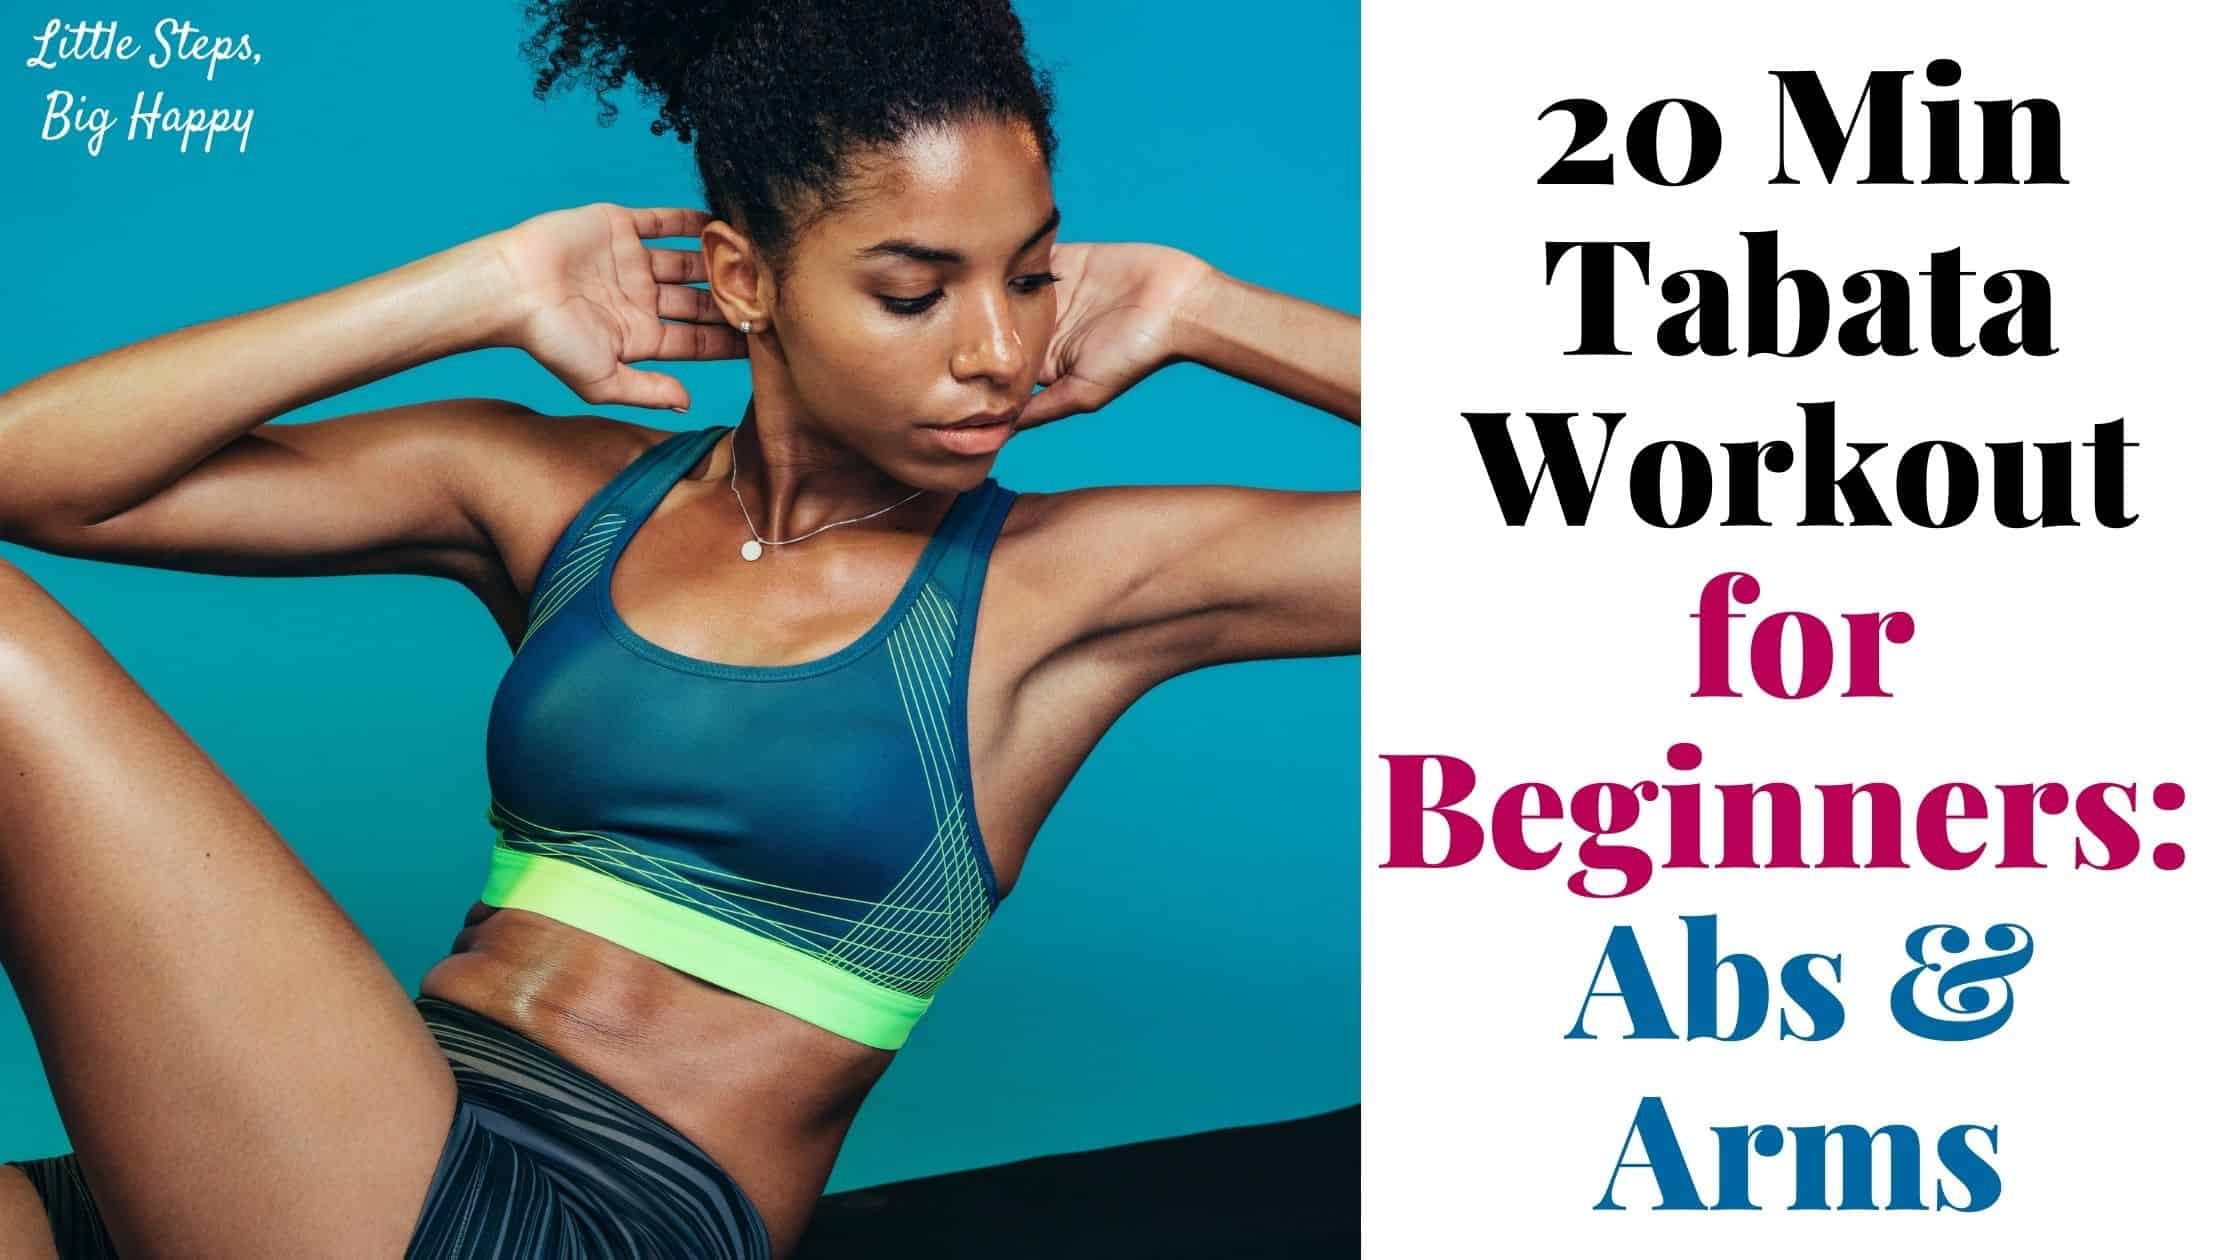 20 Min Tabata Workout for Beginners Abs & Arms